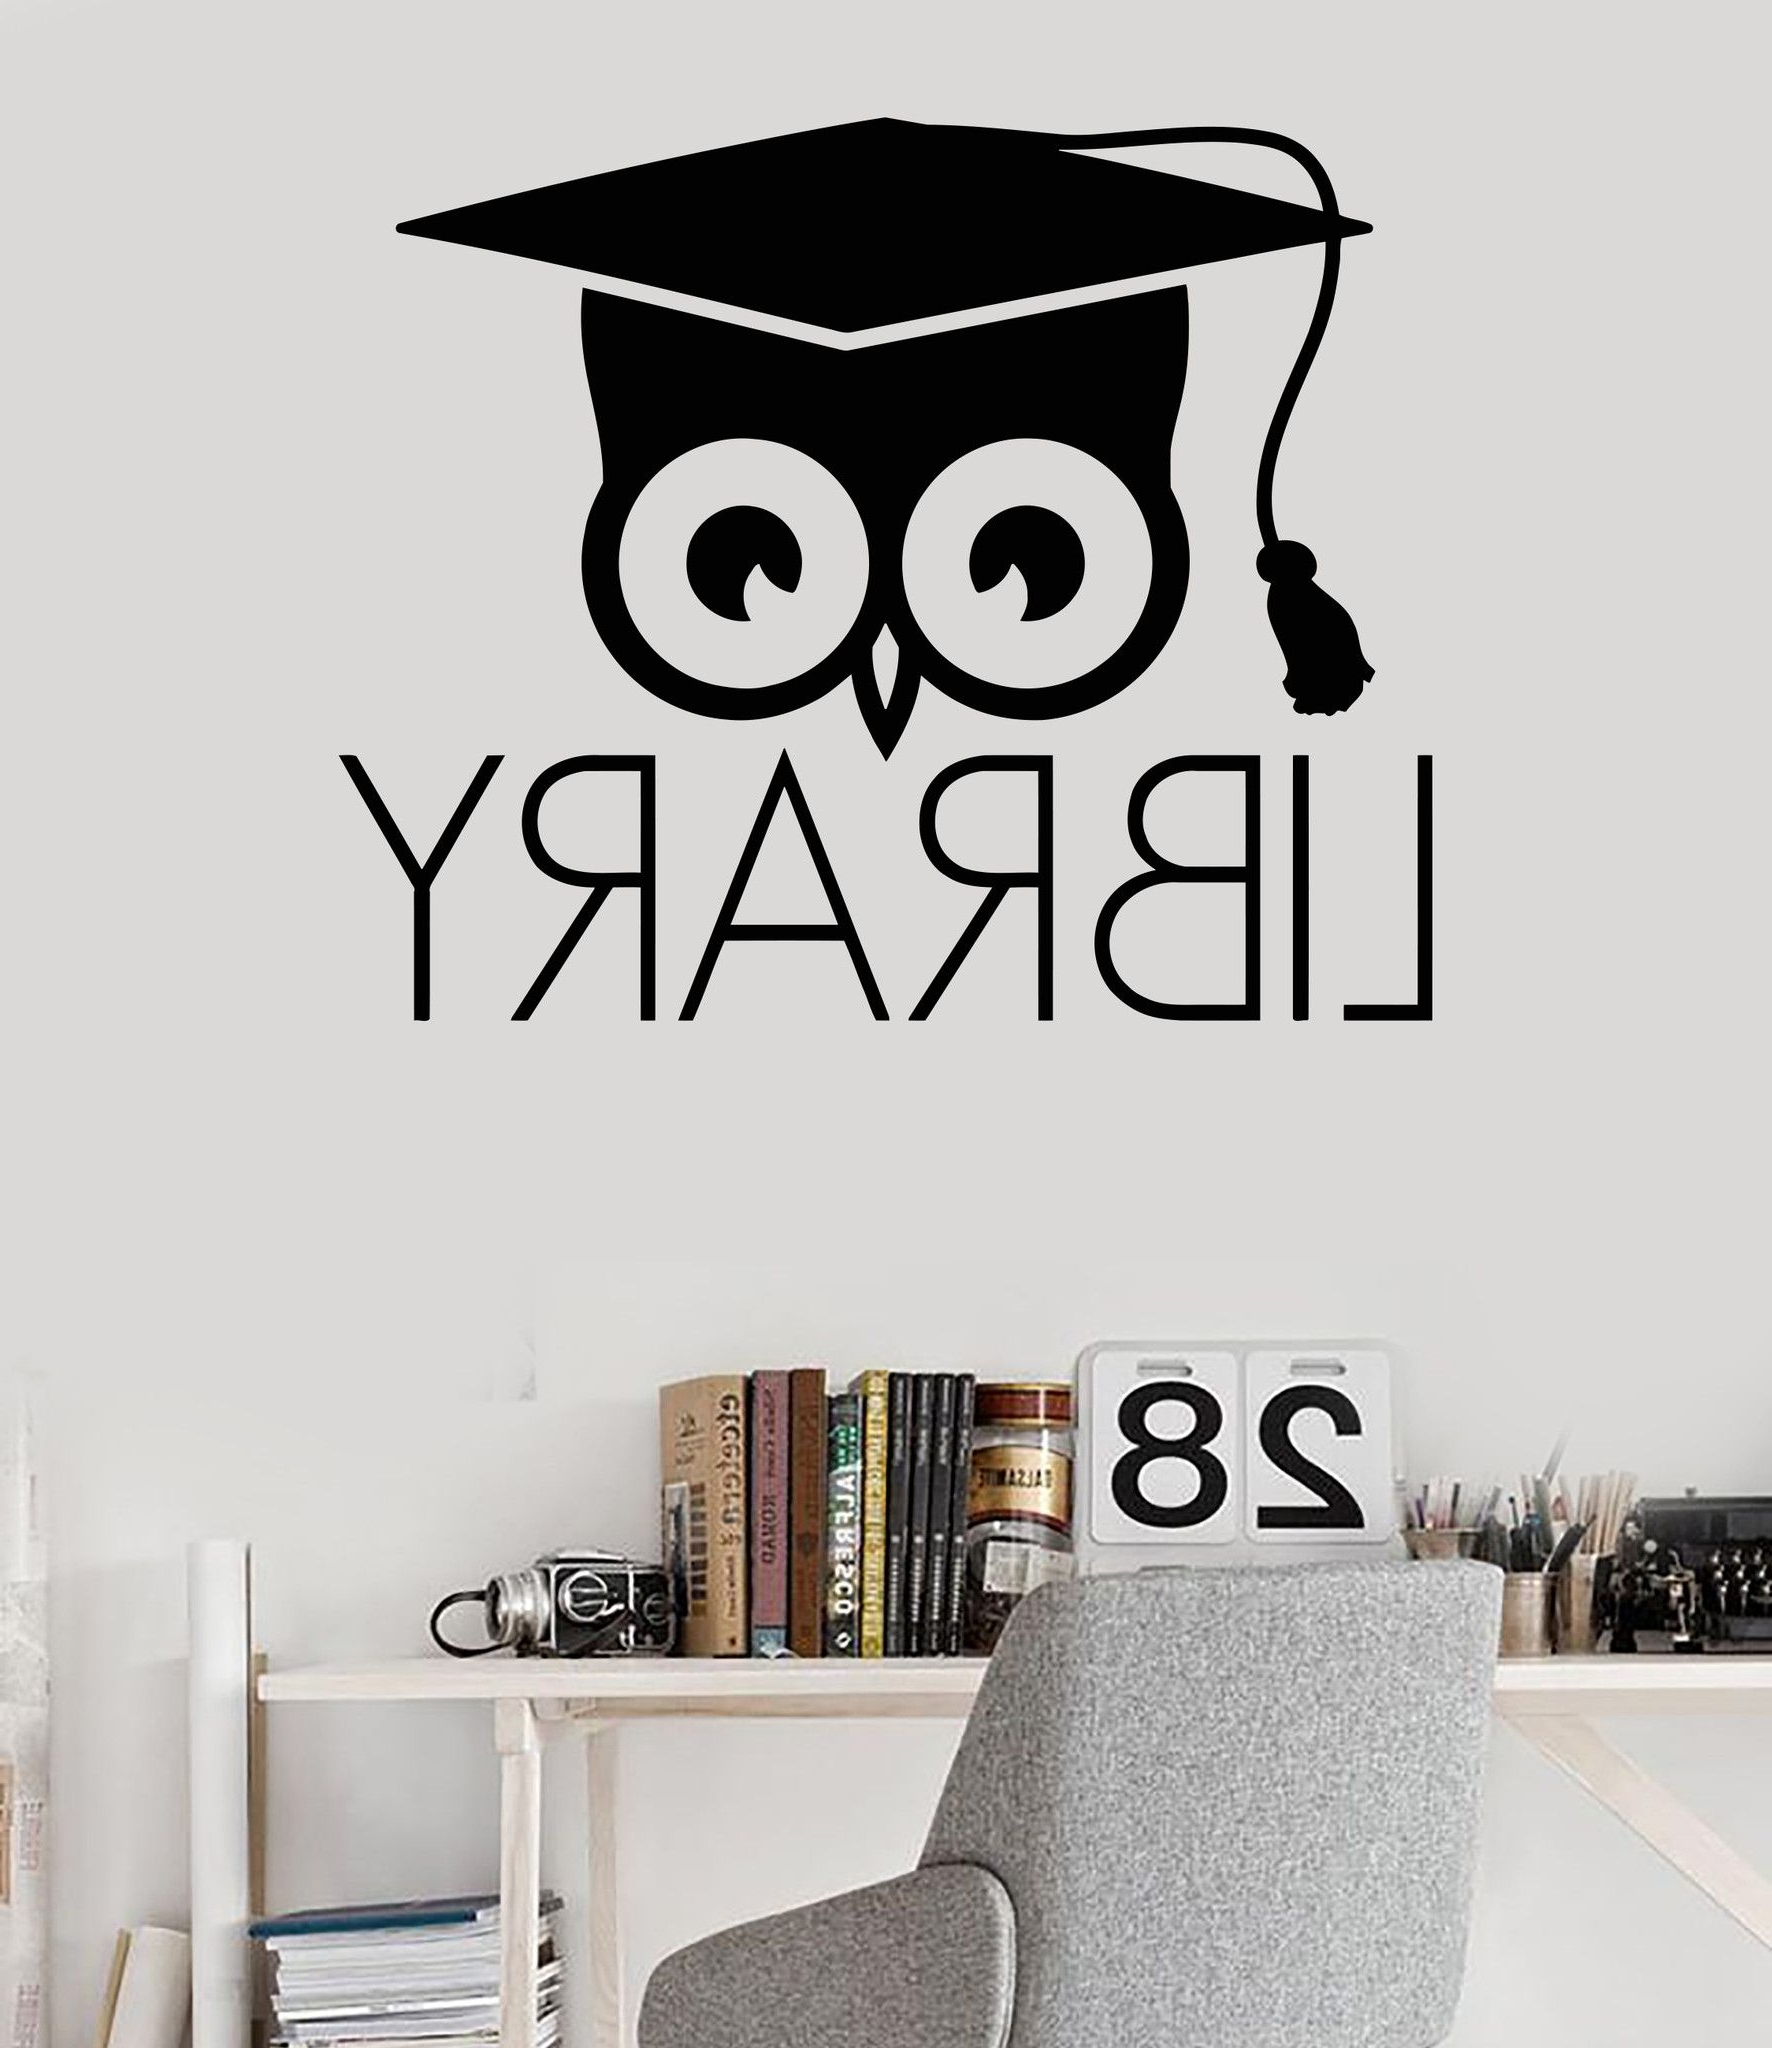 Latest Vinyl Wall Decal Library Books Bookworm Academic Owl Scientific For Preschool Classroom Wall Decals (View 12 of 15)